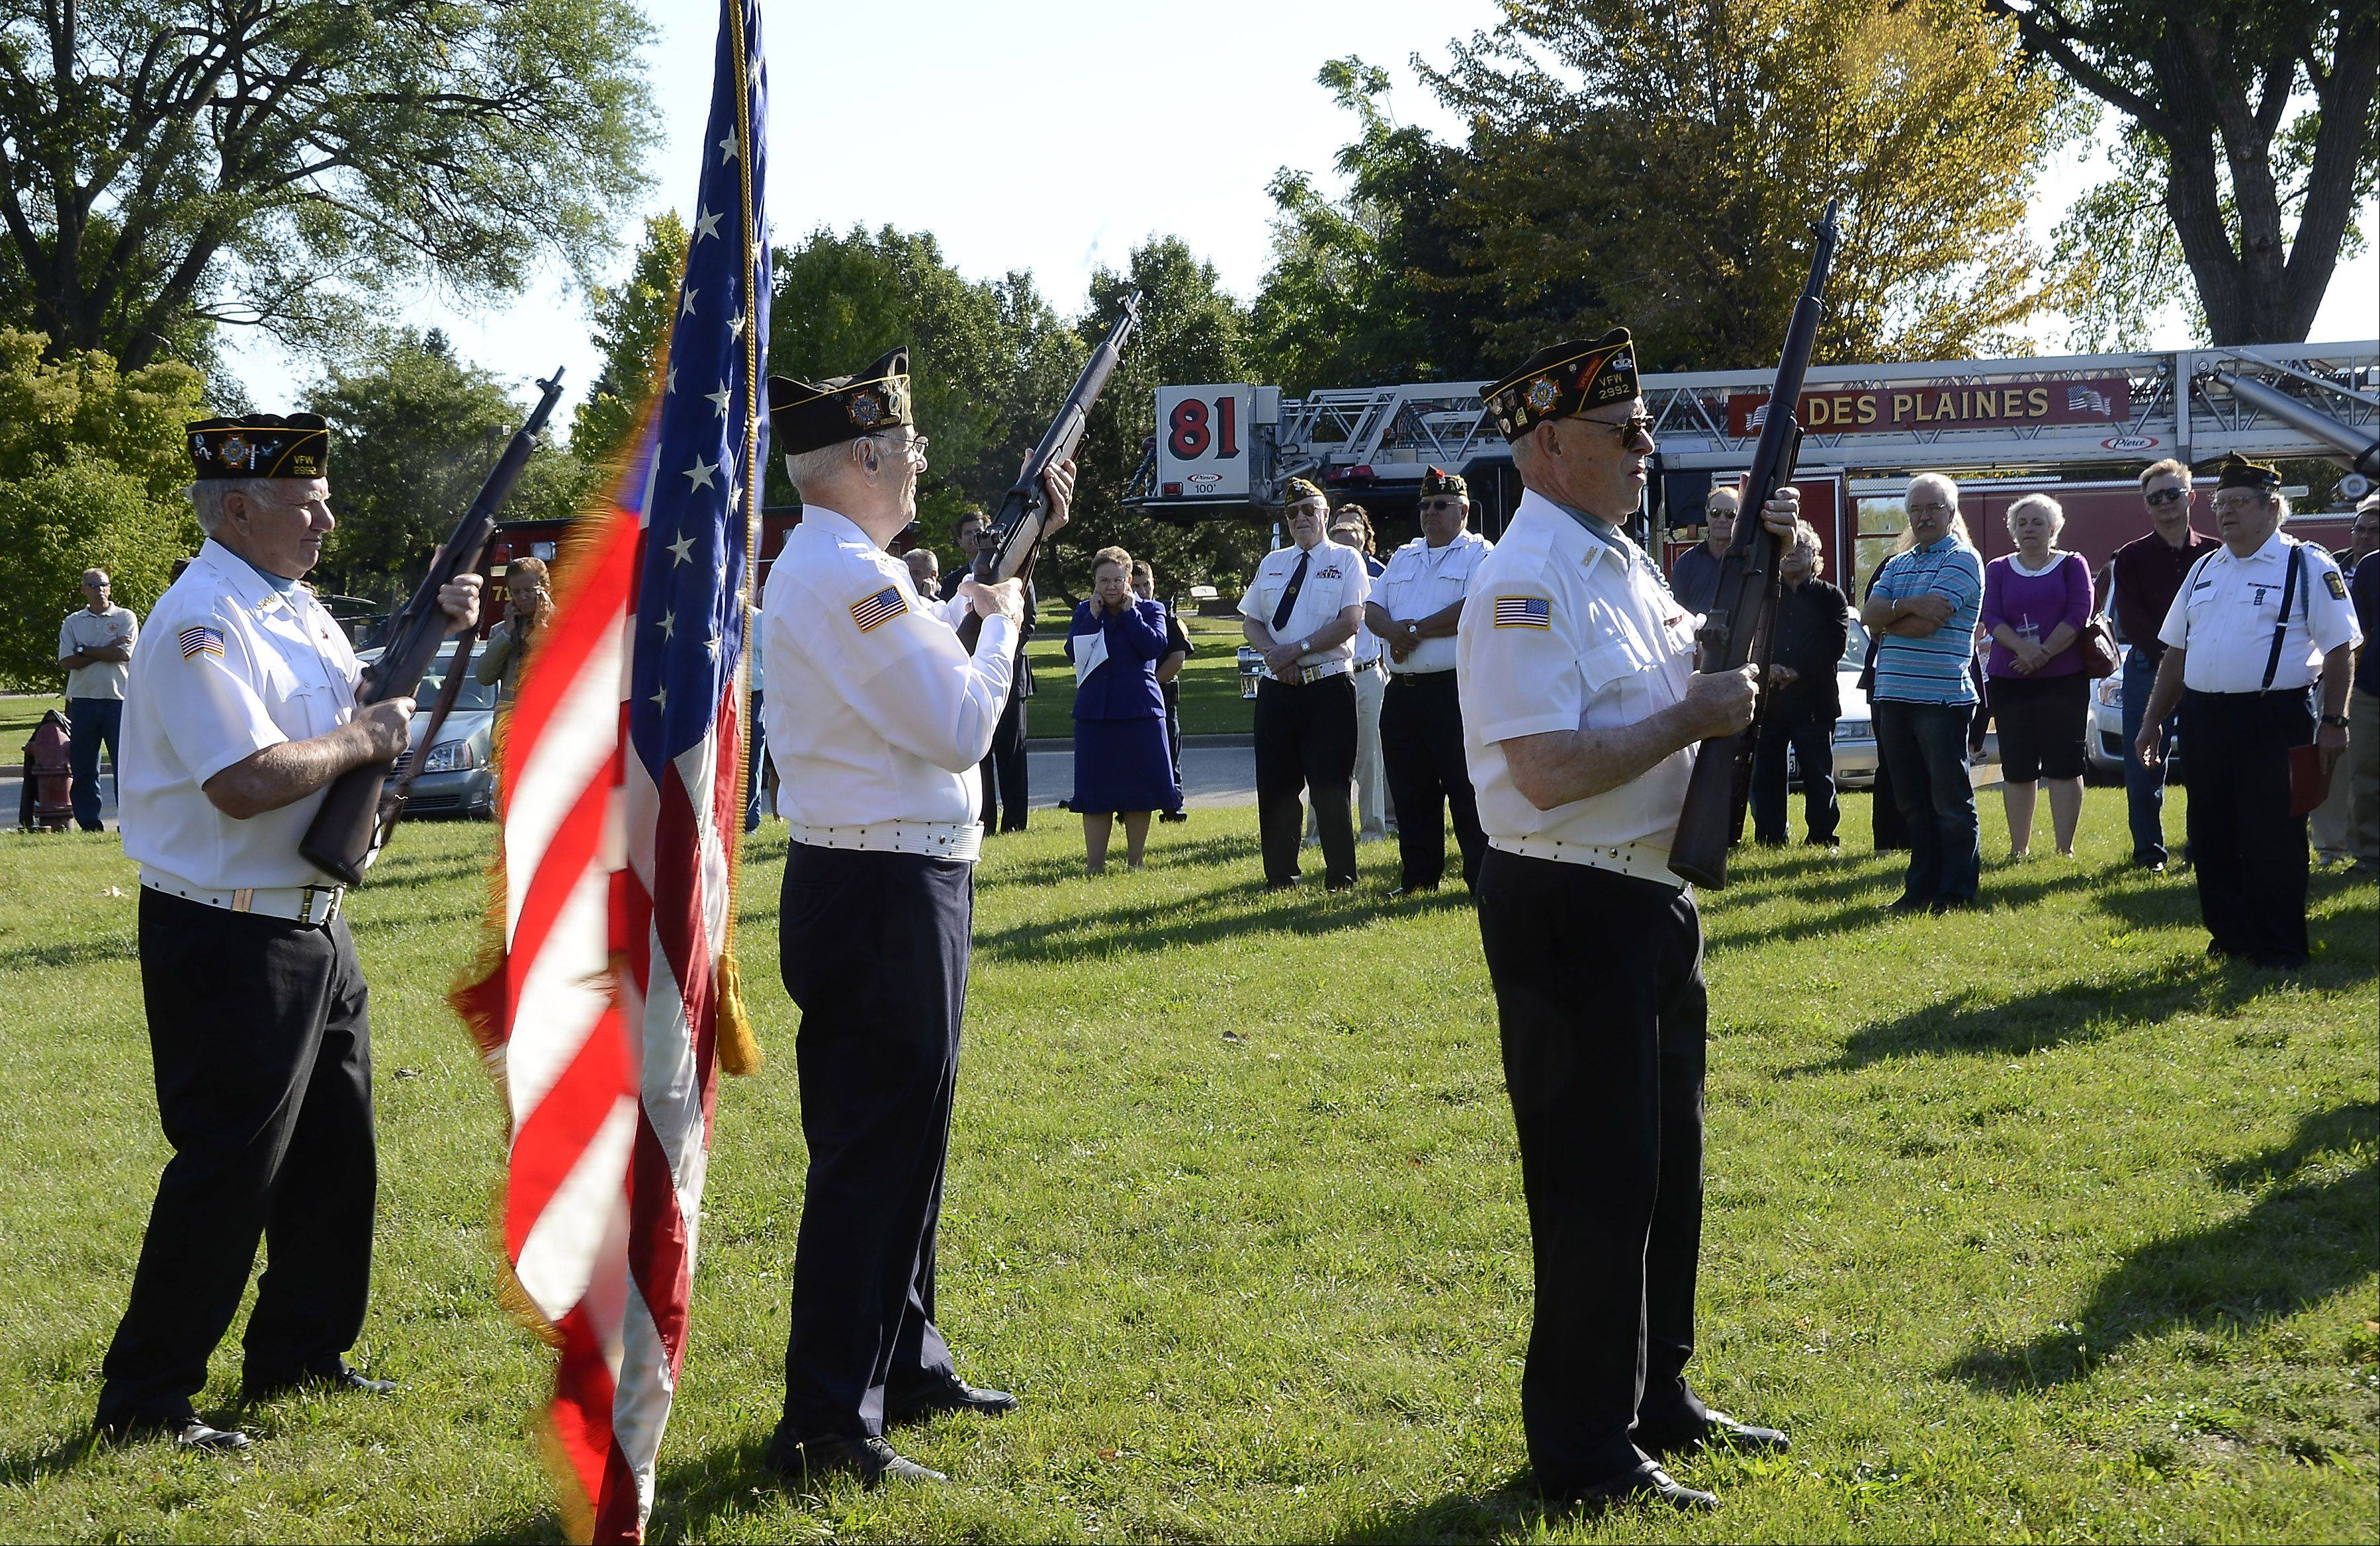 Members of a combined honor guard made up of members from American Legion Post 36 and Veterans of Foreign Wars Post 2992 fire a salute during a 9/11 Patriot Day celebration at Maryville Academy in Des Plaines.